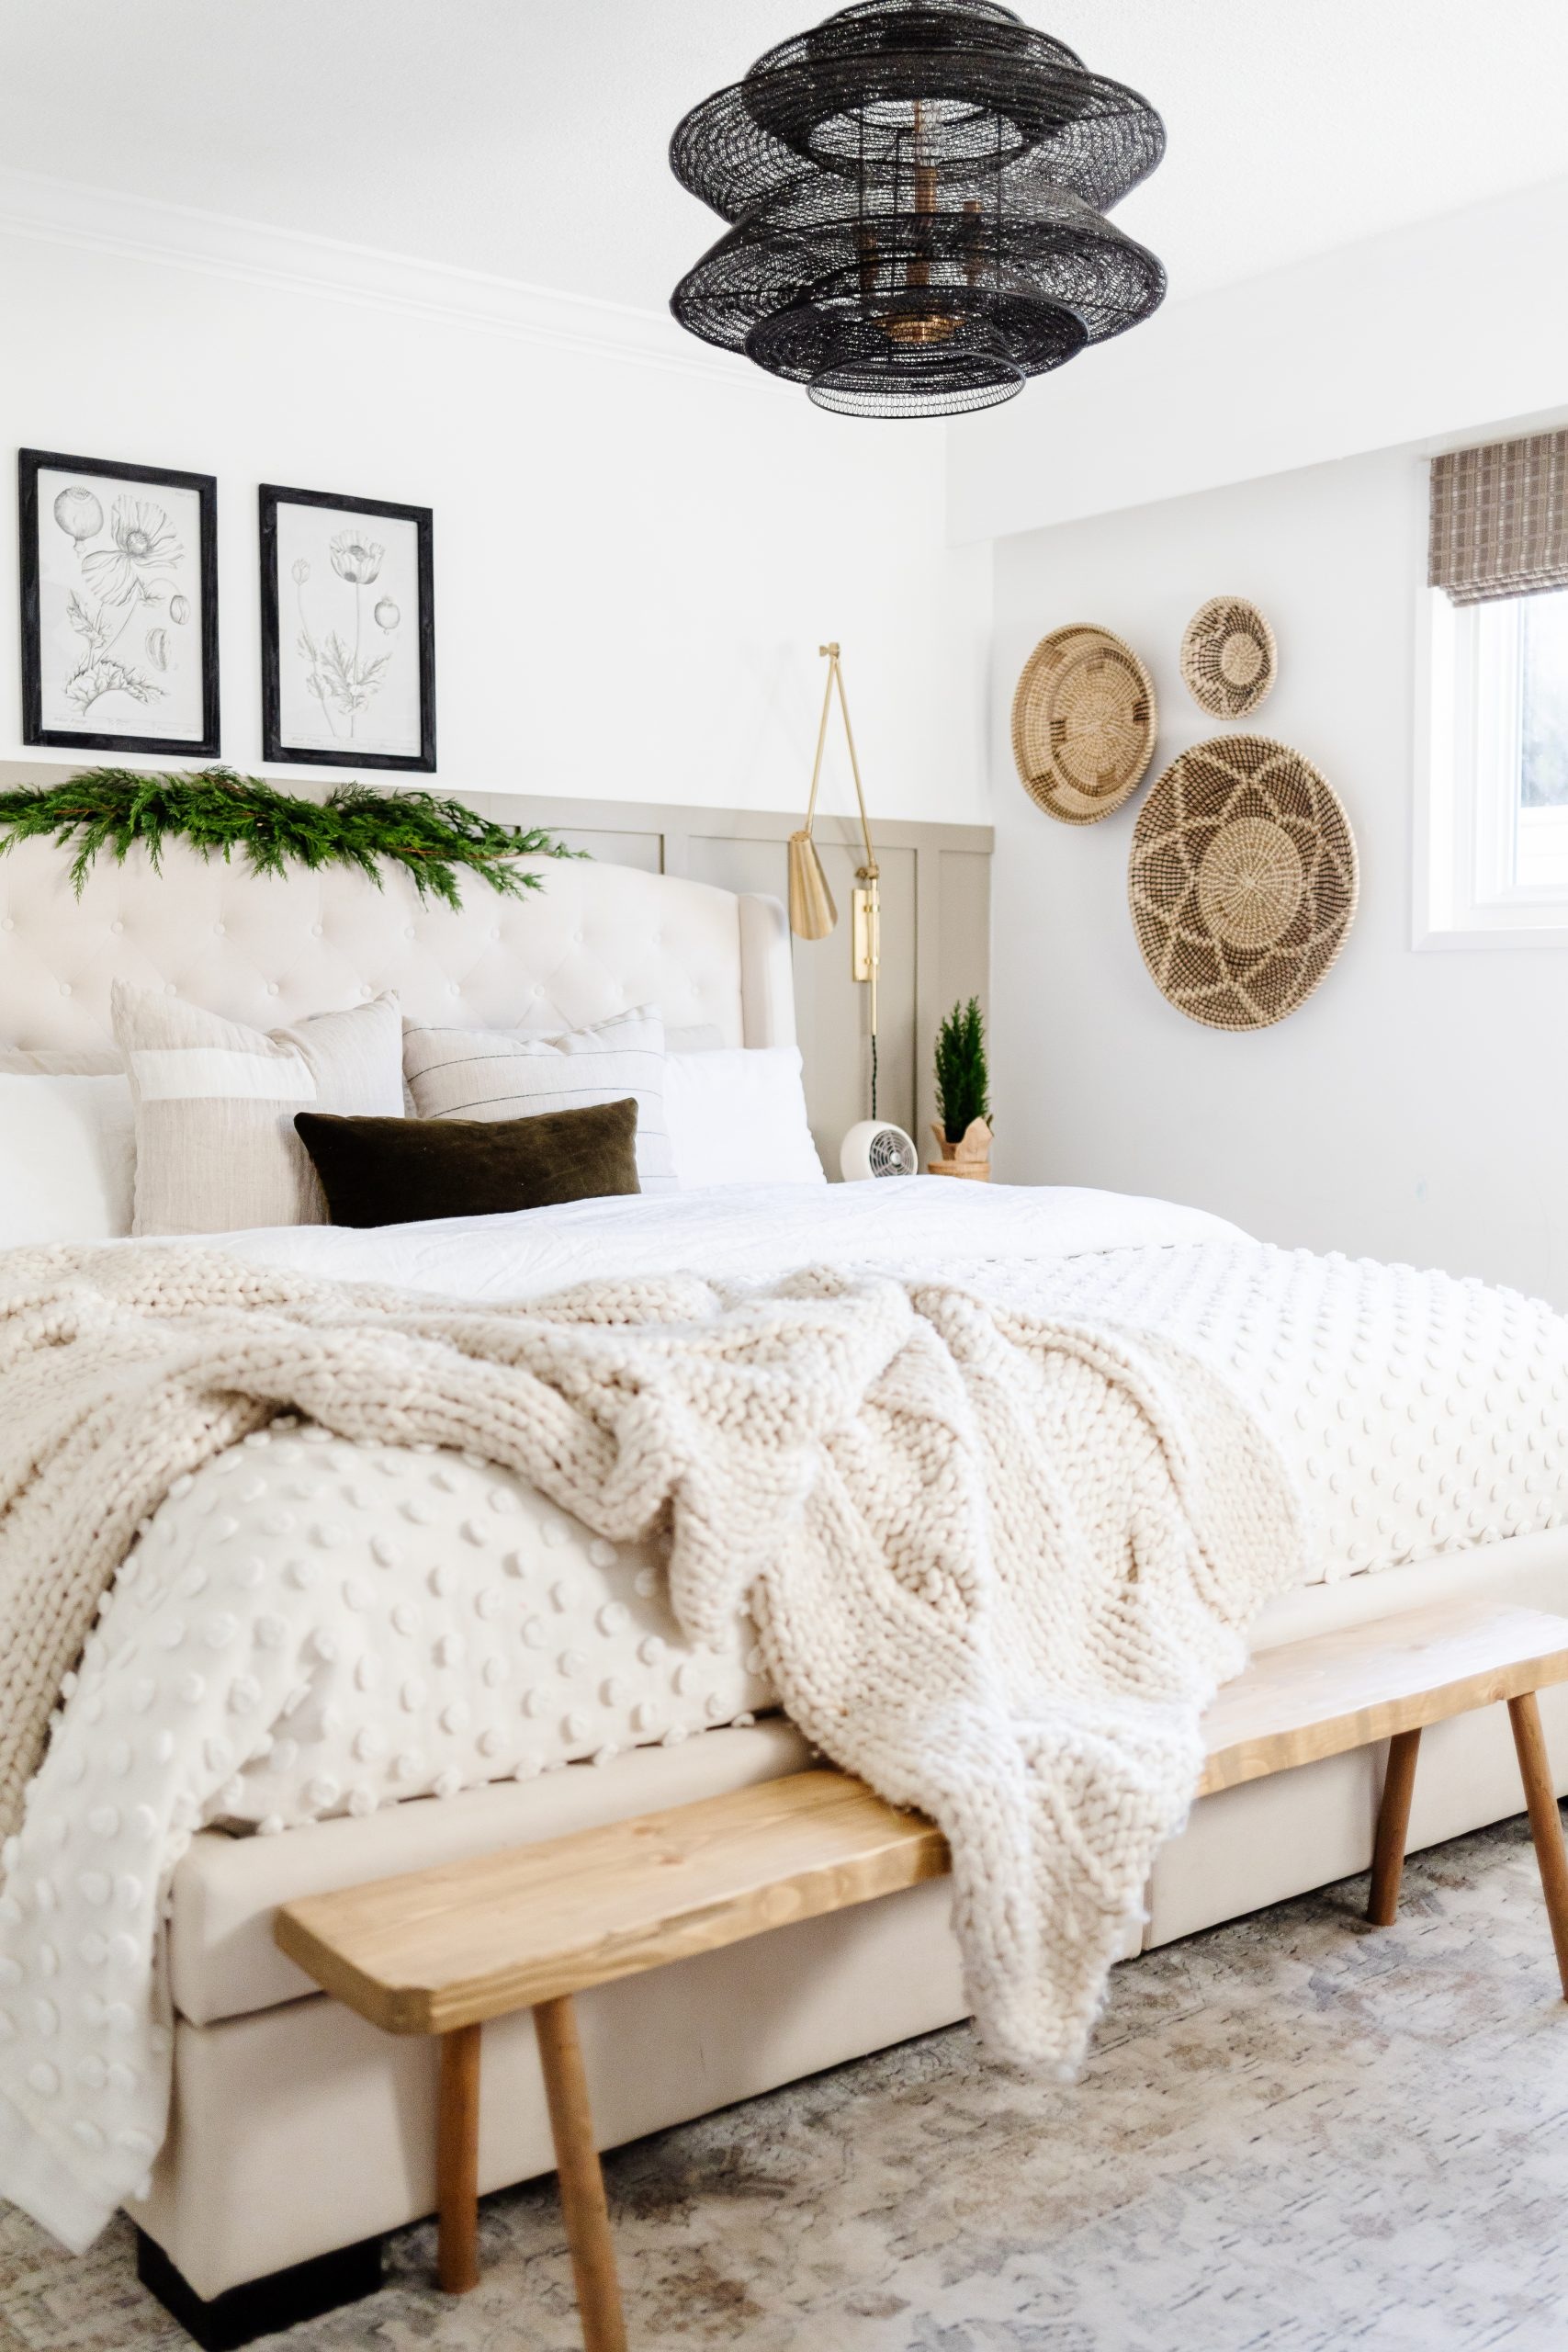 Olive Green Board and Batten. I DIY'd the board and batten in our master bedroom and then painted it this amazing shade of green. Click on the blog to find out what colour I used and how easy board and batten is to DIY!